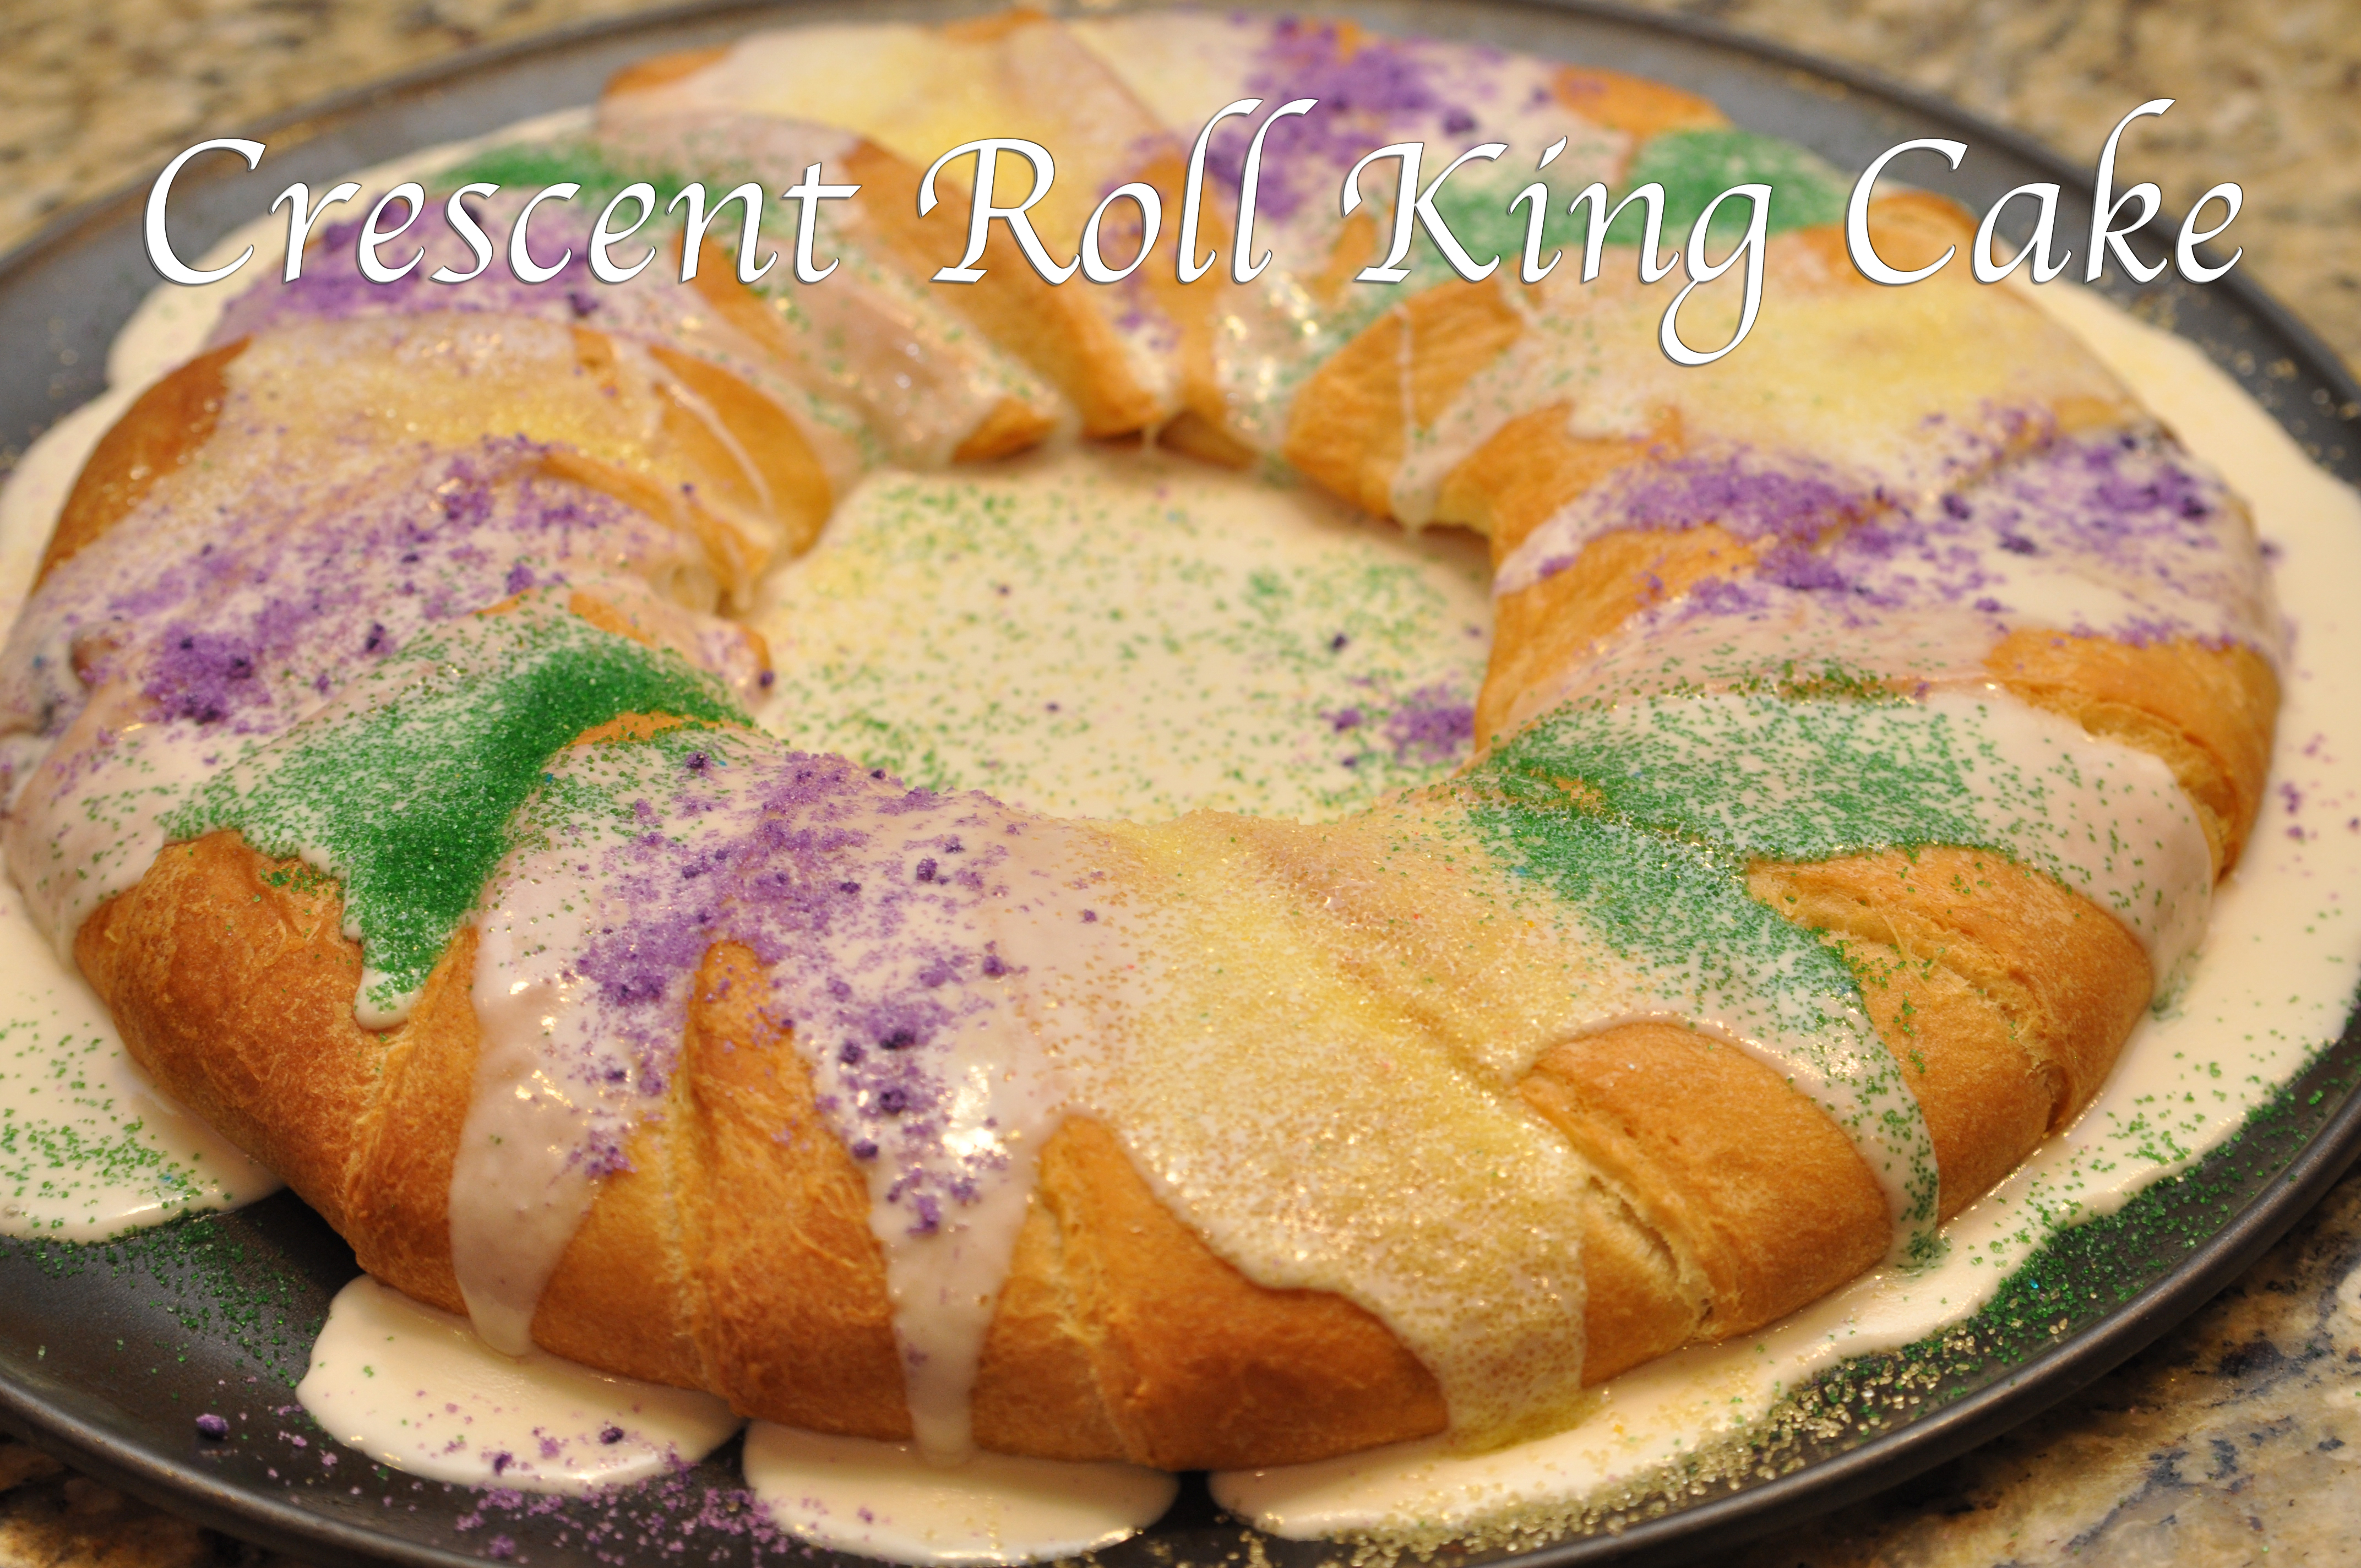 Crescent Roll King Cake